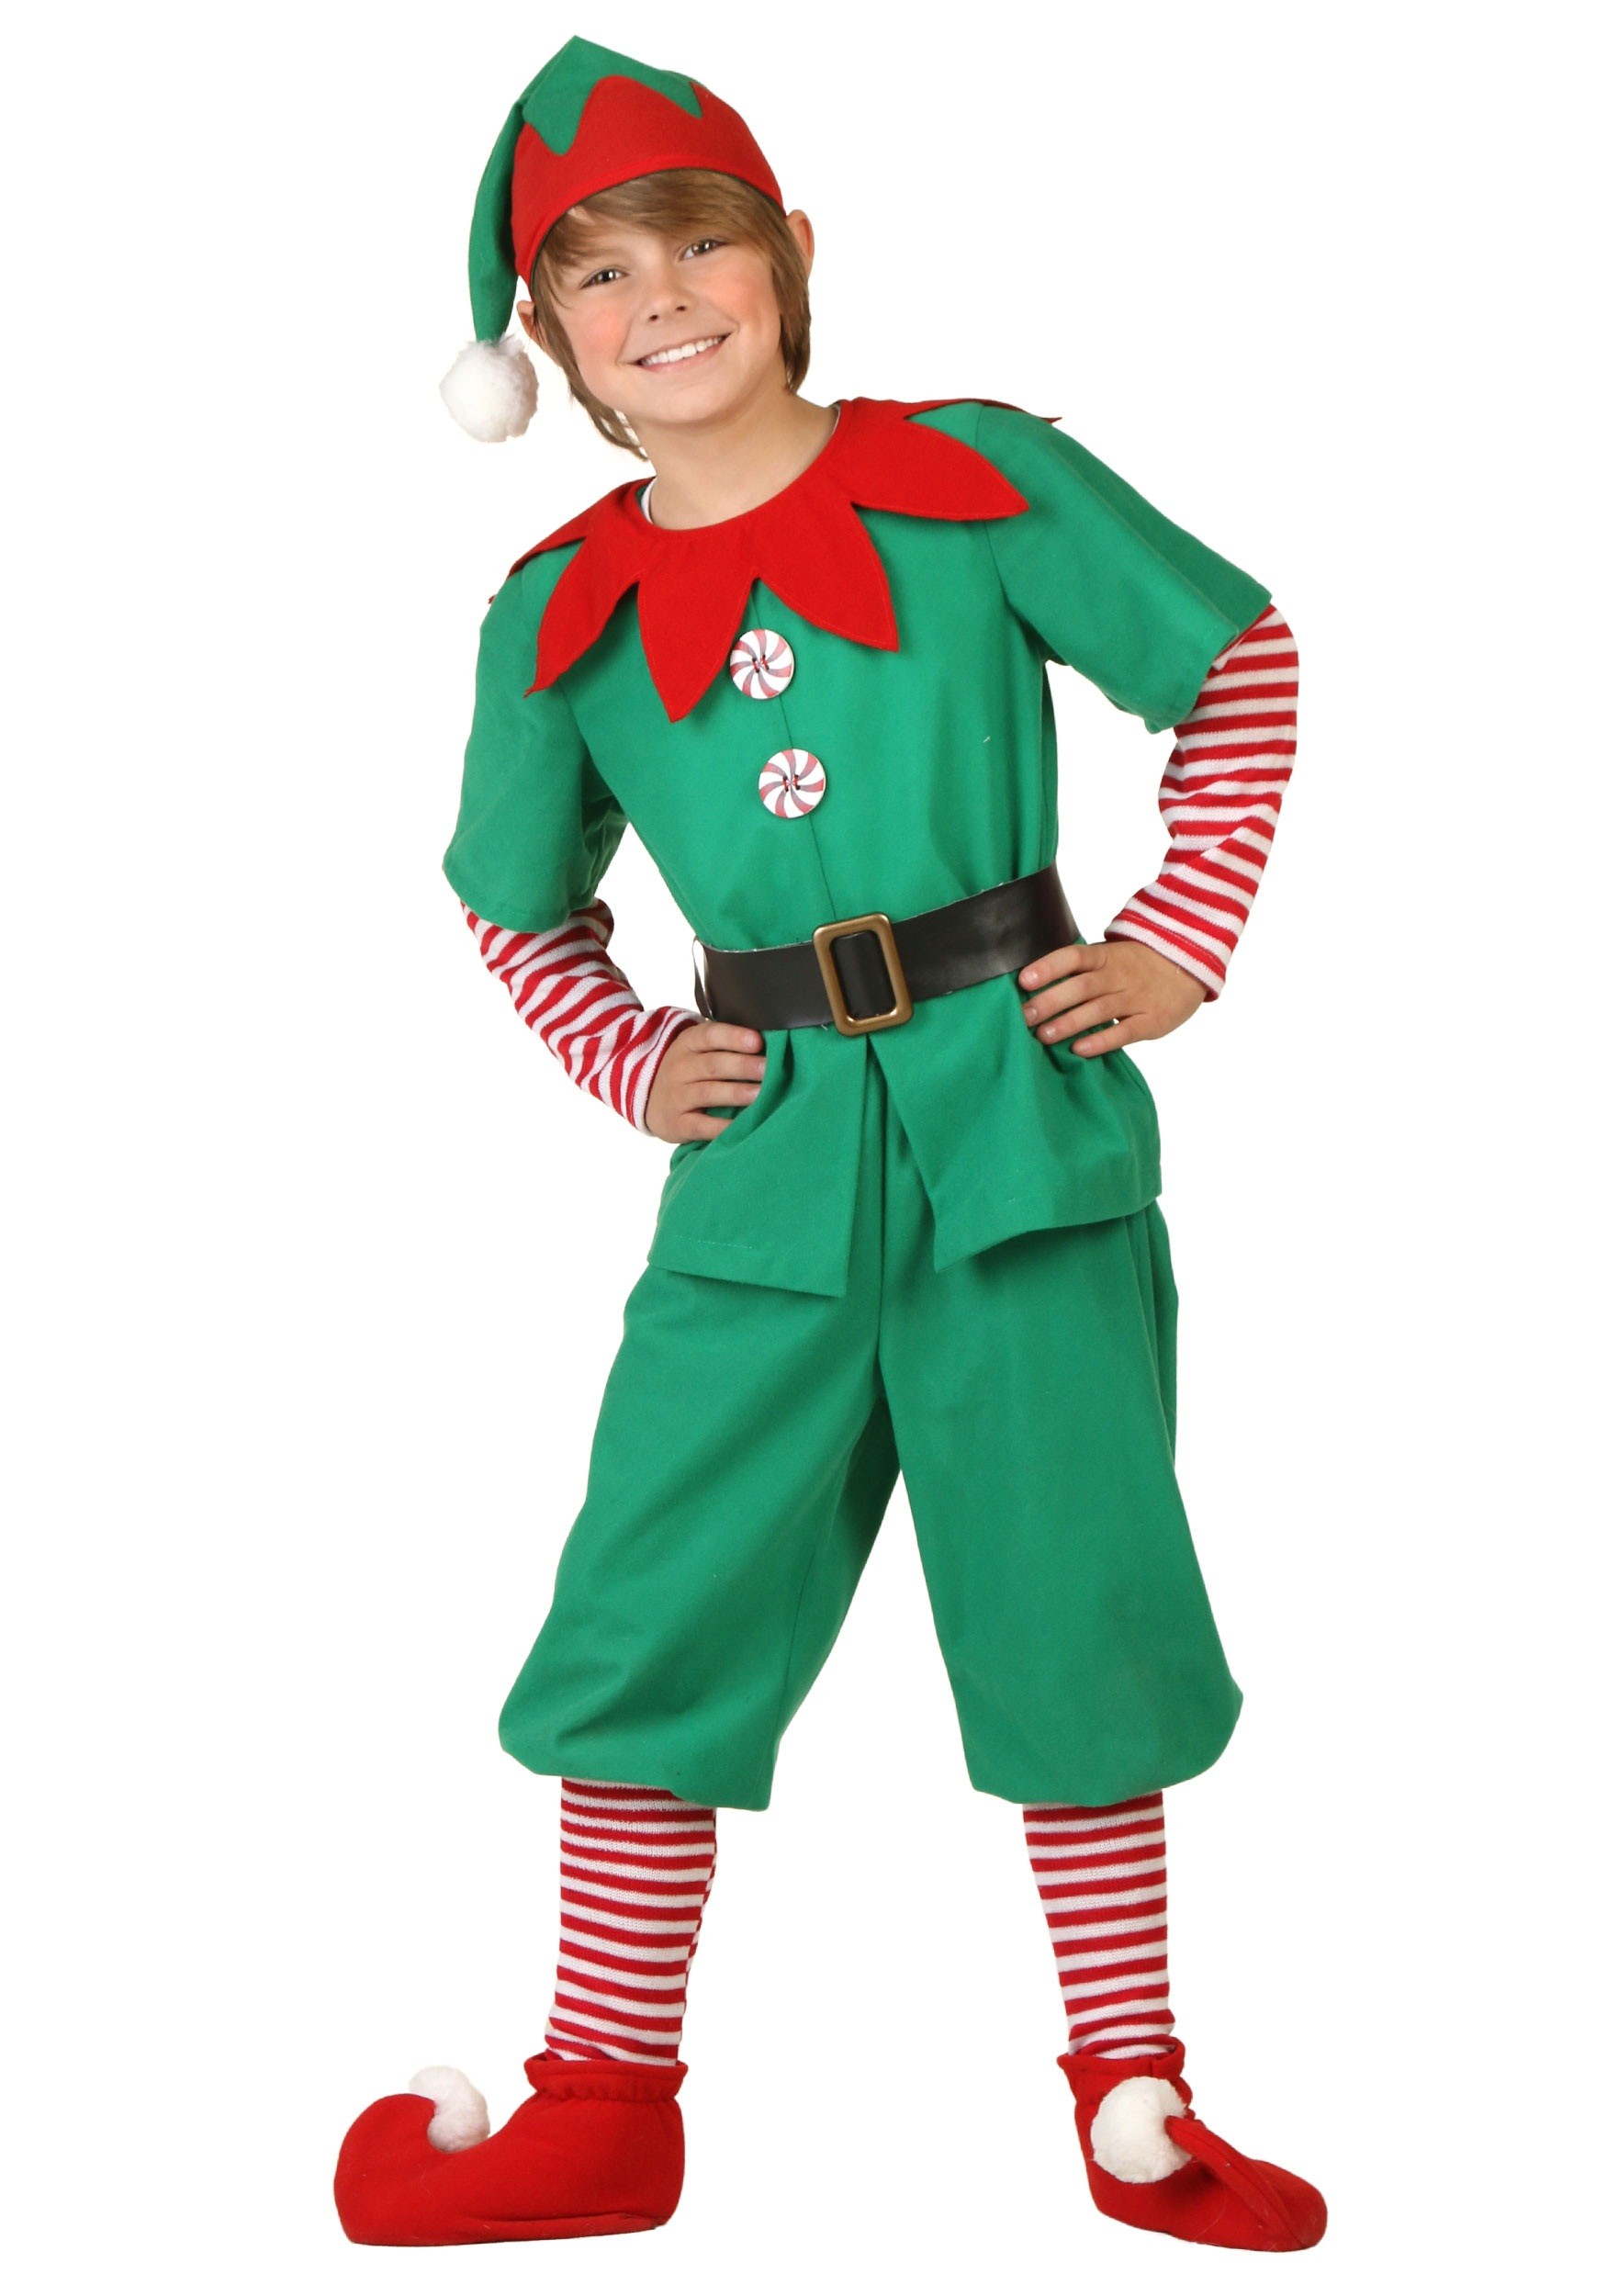 Be merry during the holidays with any of our Christmas Elf costumes. Become one of Santa's little helpers in any of our elf outfits. There have been plenty of popular characters throughout the years such as Buddy, Hermey, and more!